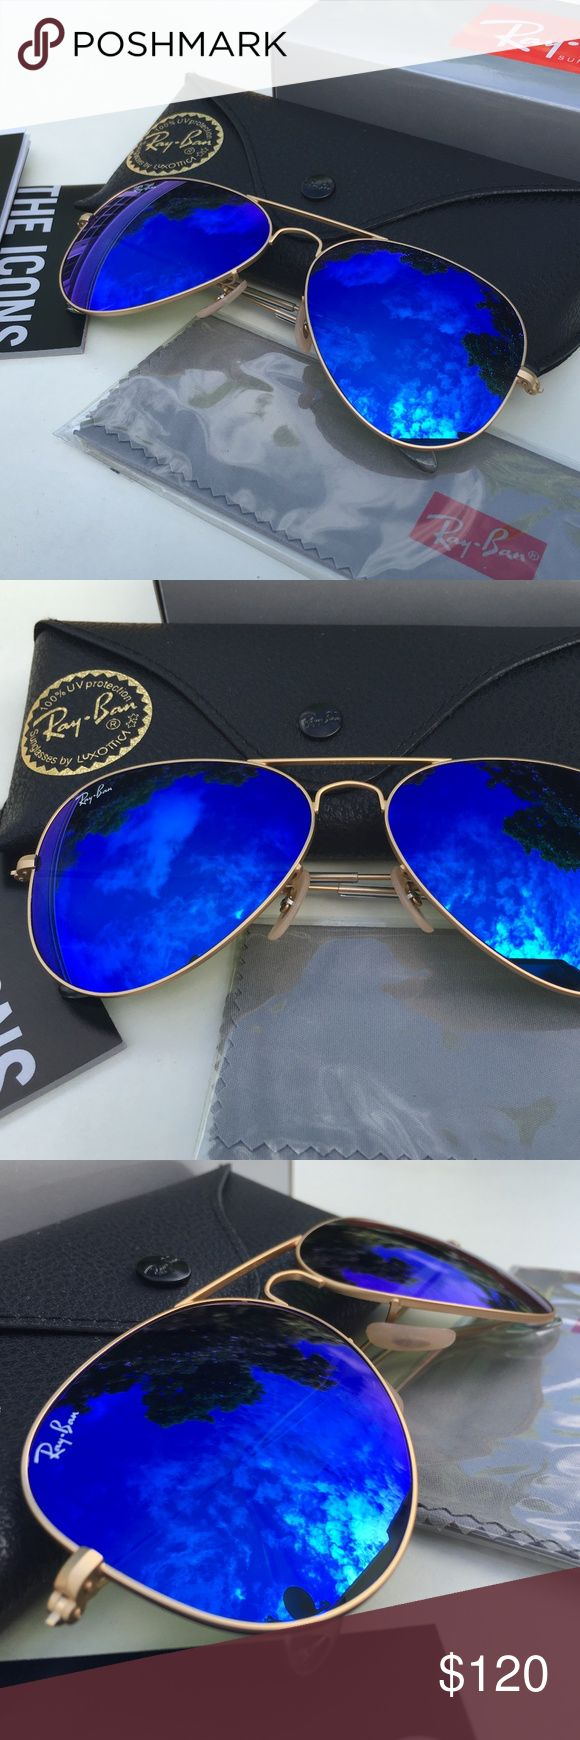 RAY-BAN AVIATOR Sunglasses - Blue Flash/Gold Frame 100% AUTHENTIC & BRAND NEW  Original RAY-BAN AVIATOR Sunglasses Blue Flash - Gold Frame Model: RB3025 - 112/17 (58mm & 62mm)   -----------------------------------------------------------------   Product Description: Brand: Ray-Ban (100% Authentic) Lens Color: Blue Flash Frame Color: Gold Model: RB3025 Color Code: 112/17 Size: 58-62mm/14/3N Gender: Unisex Made: Italy  Package Includes:  - Ray-Ban Outer Paper Box - Ray-Ban Carrying Case…